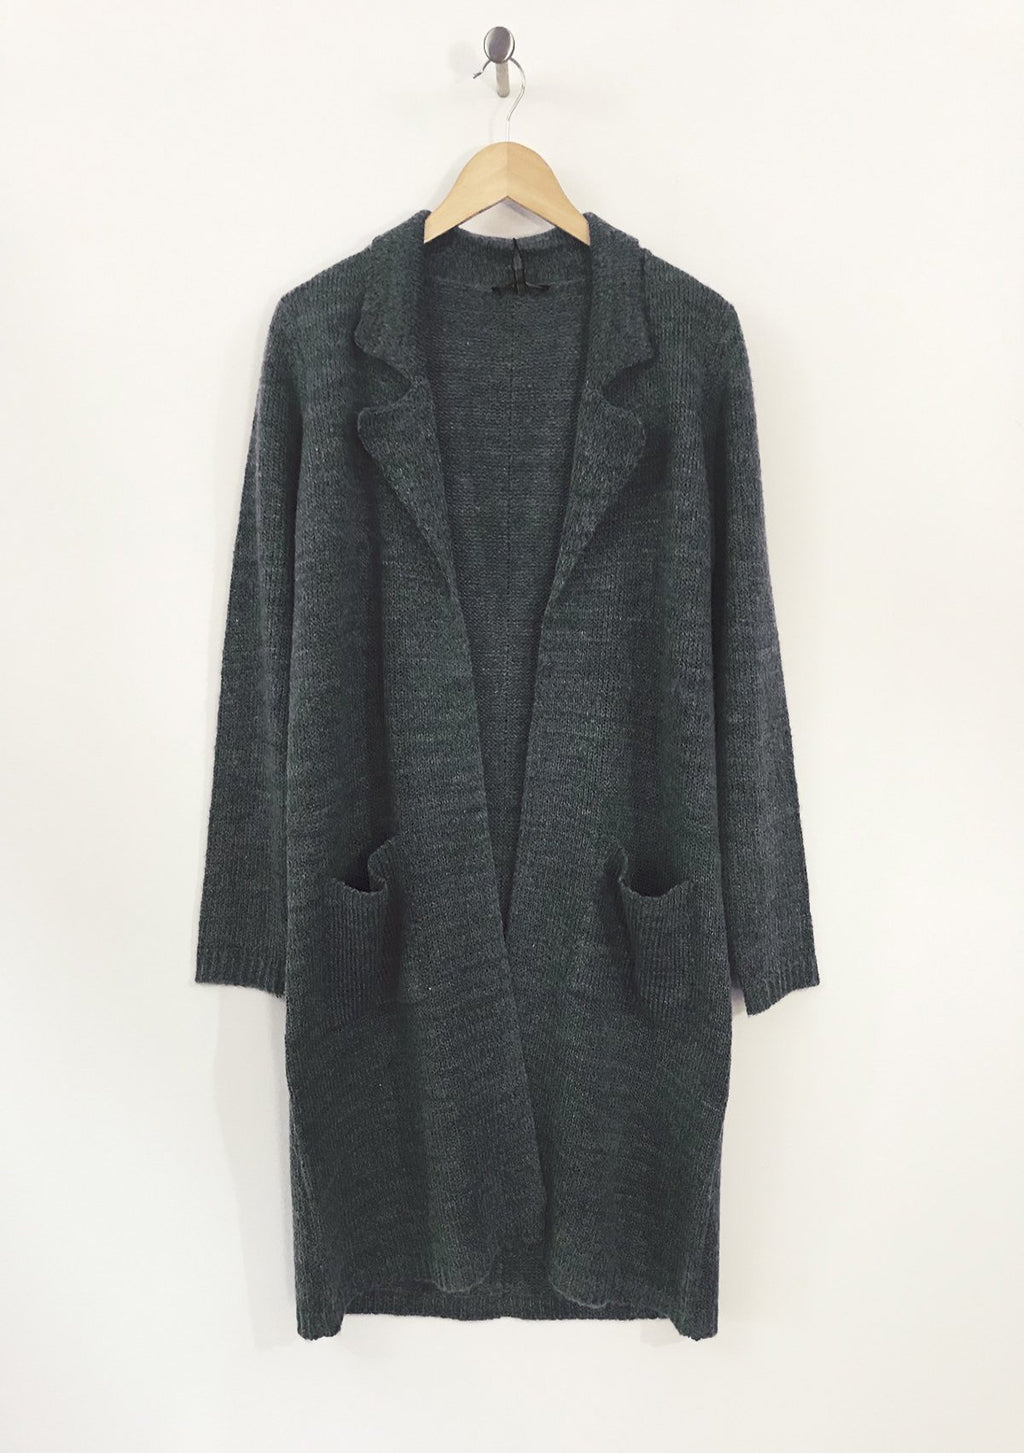 Yest Melange Woman's Sweater Coat-Black